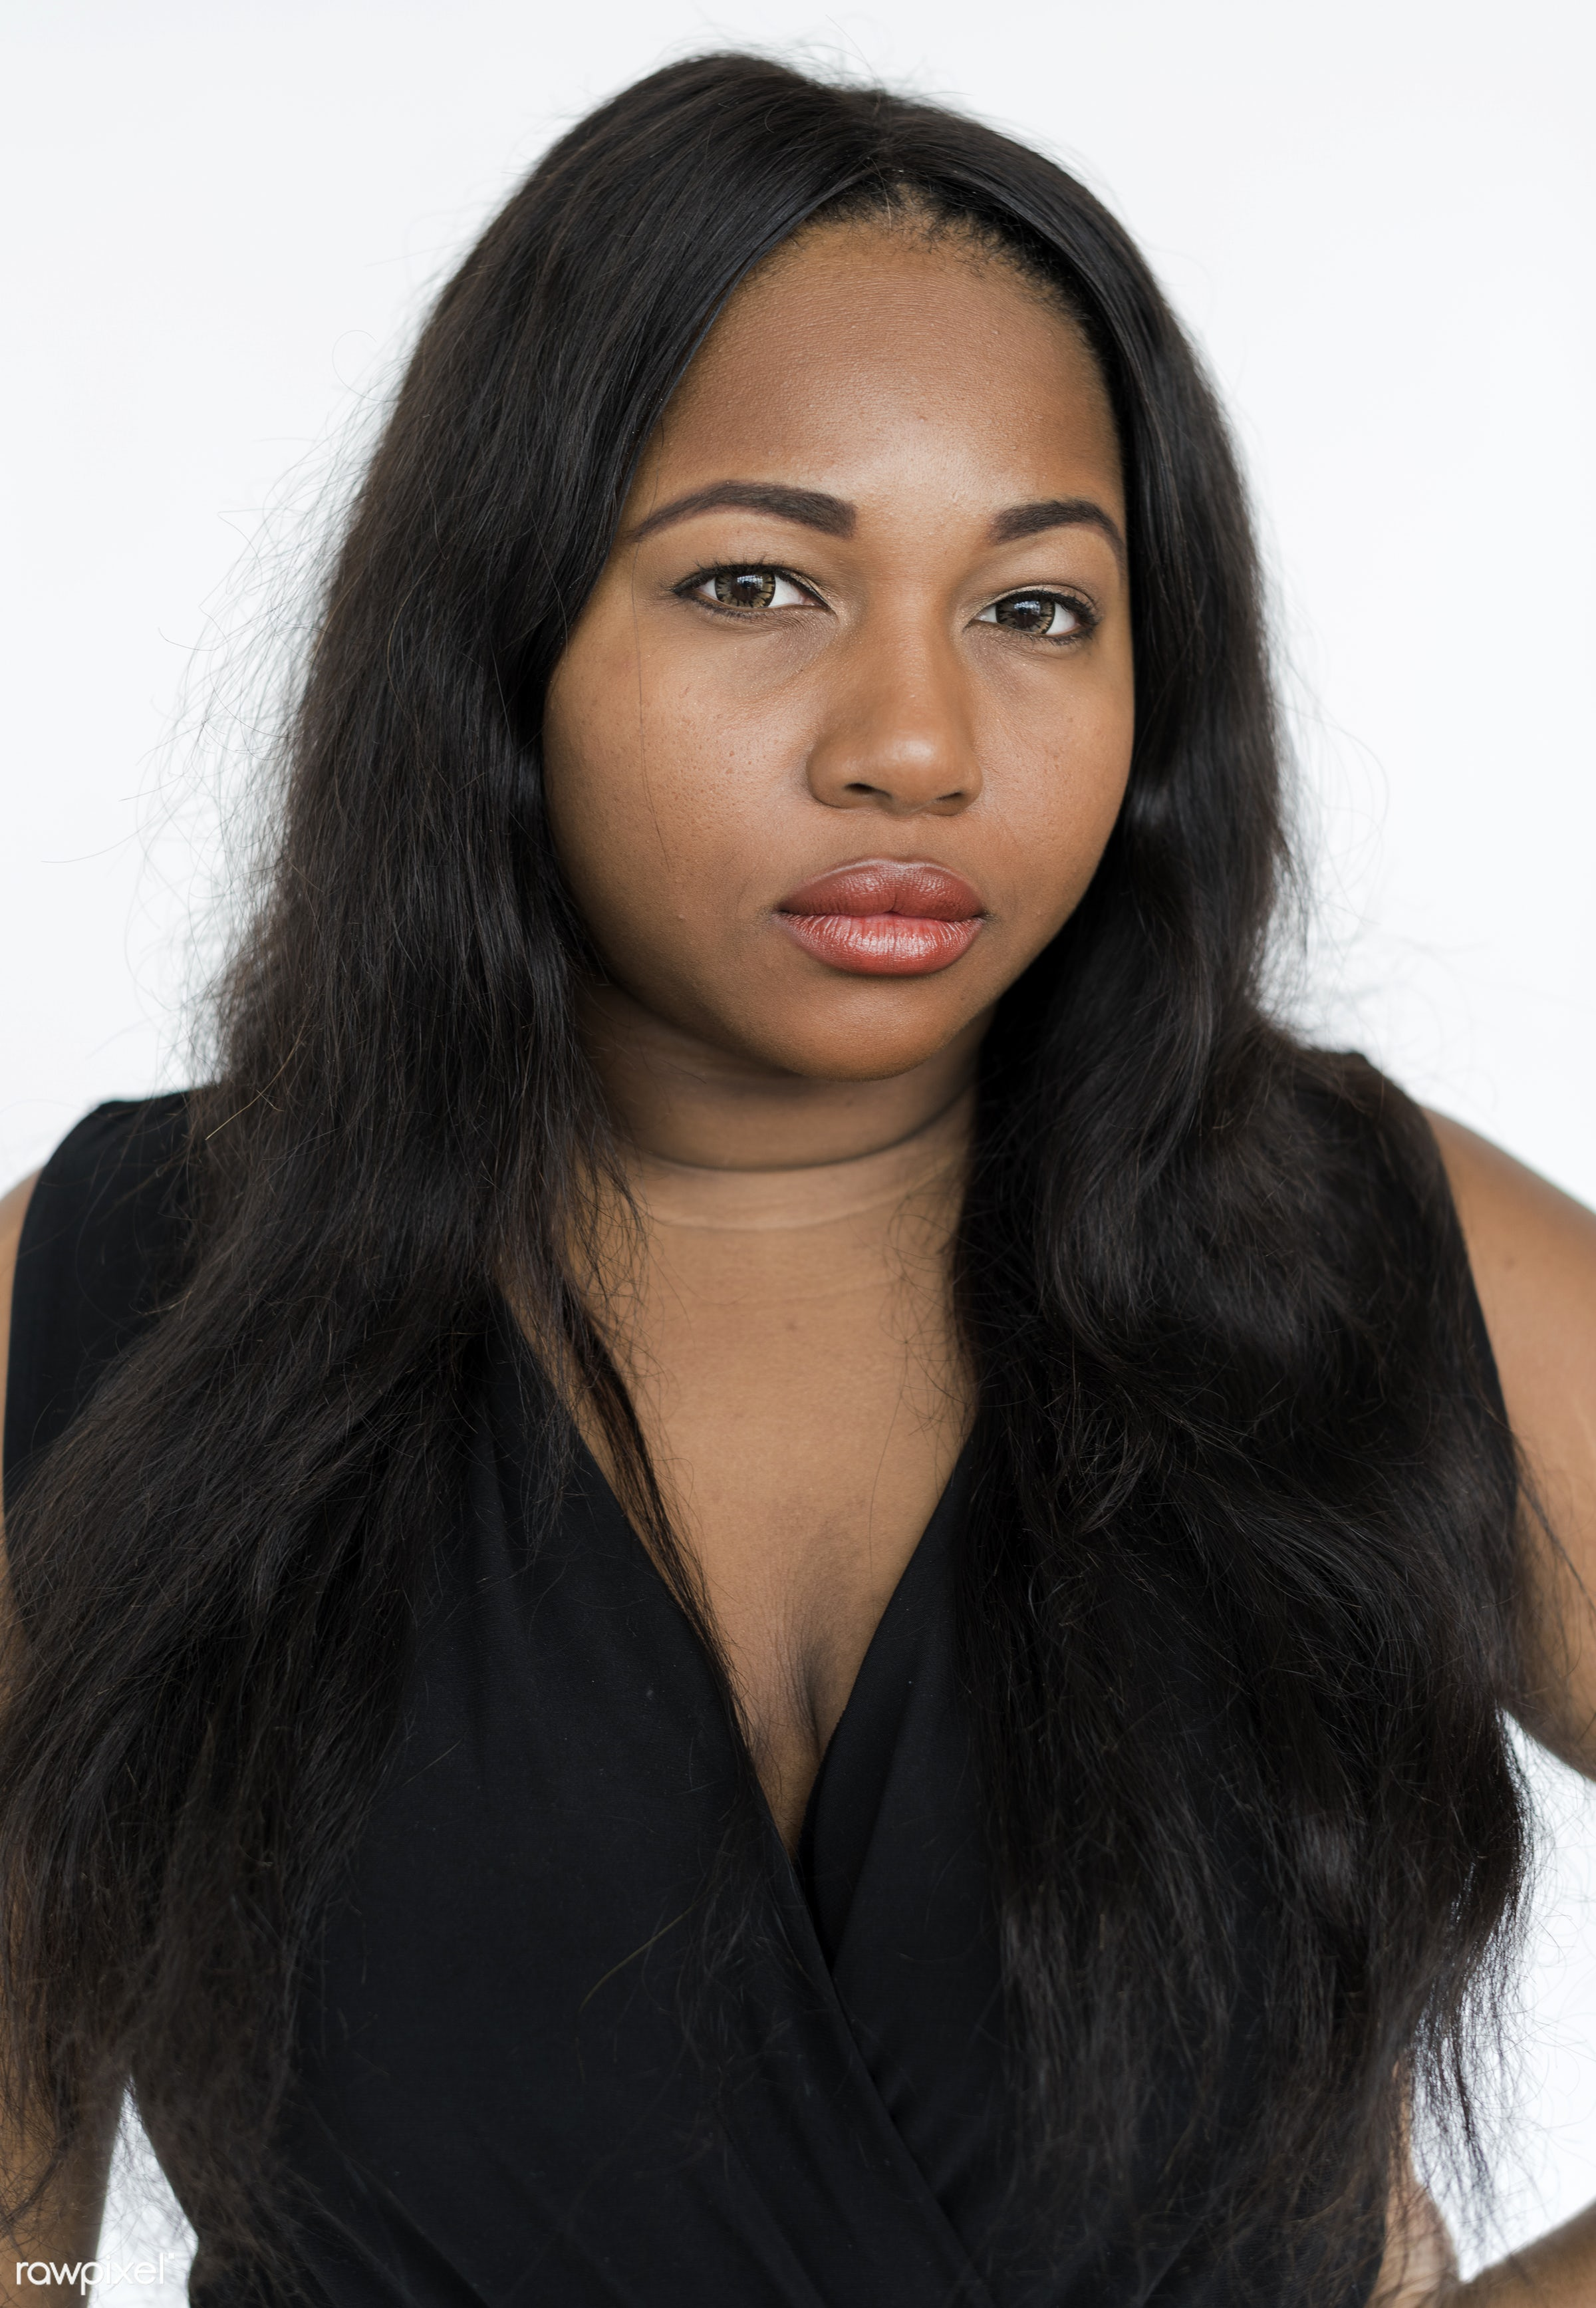 studio, expression, person, single, sad, chubby, woman, alone, serious, unhappy, thoughts, african descent, stress,...